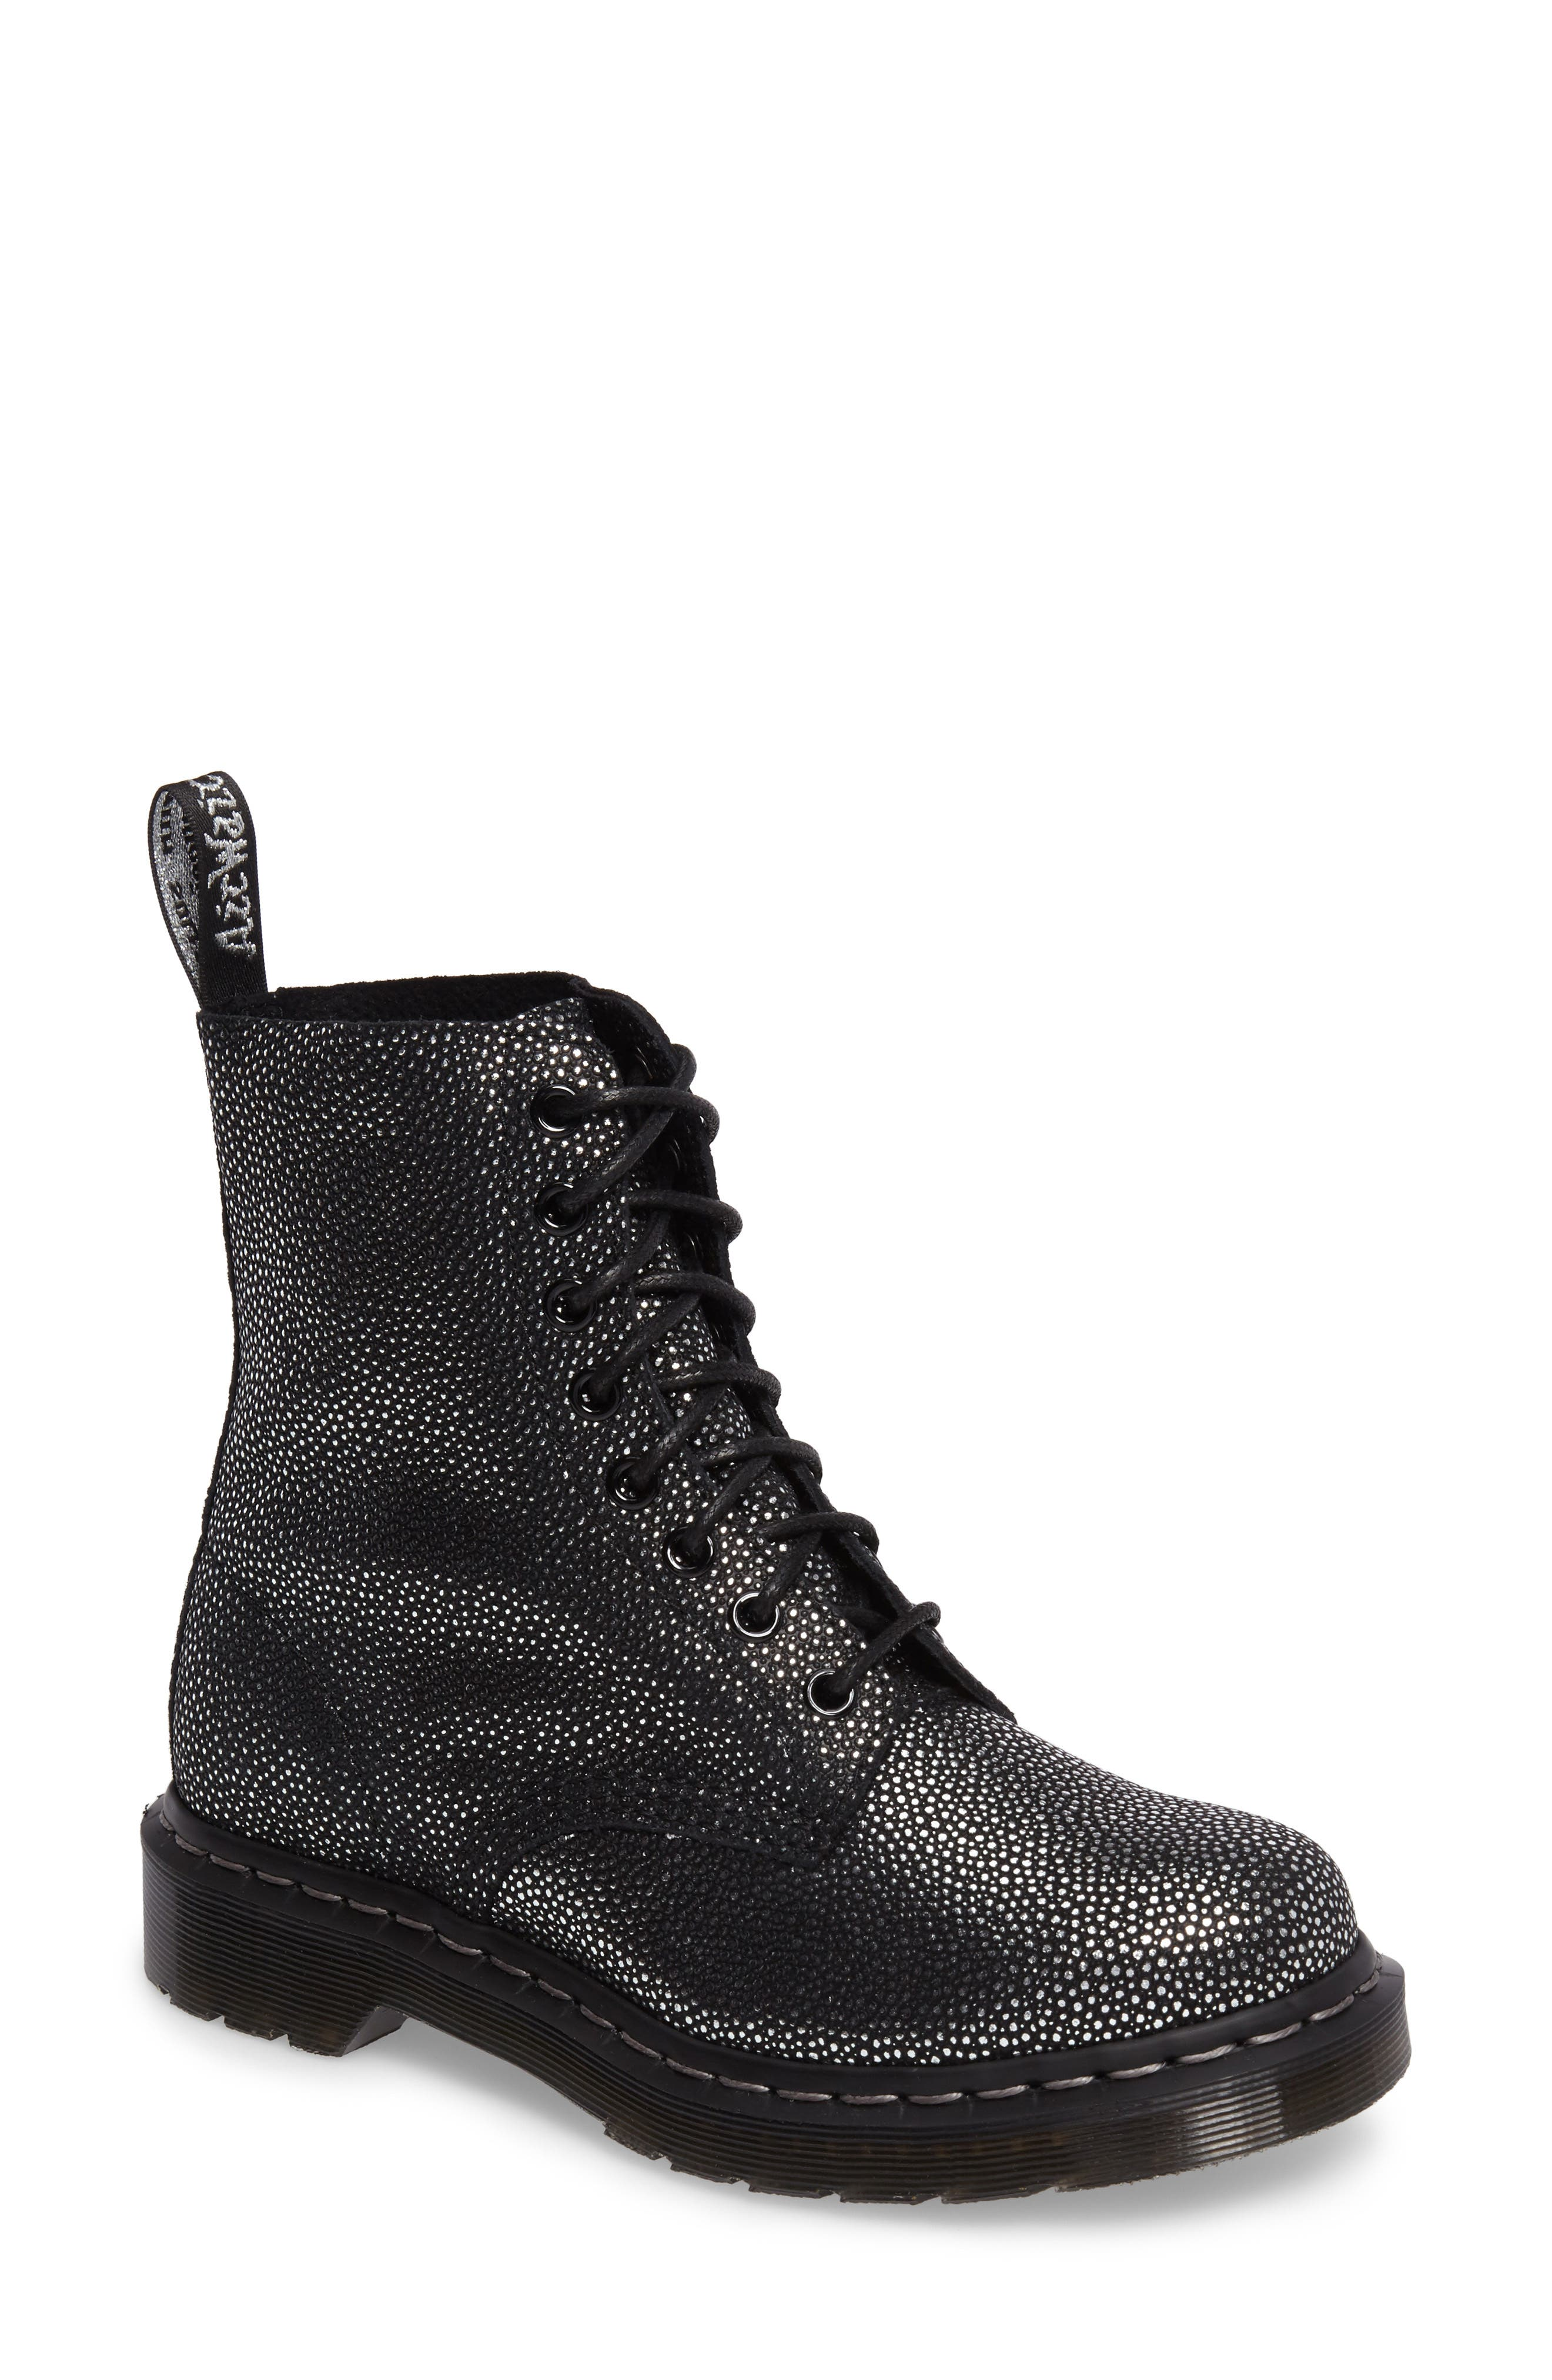 1460 Boot,                         Main,                         color, 040